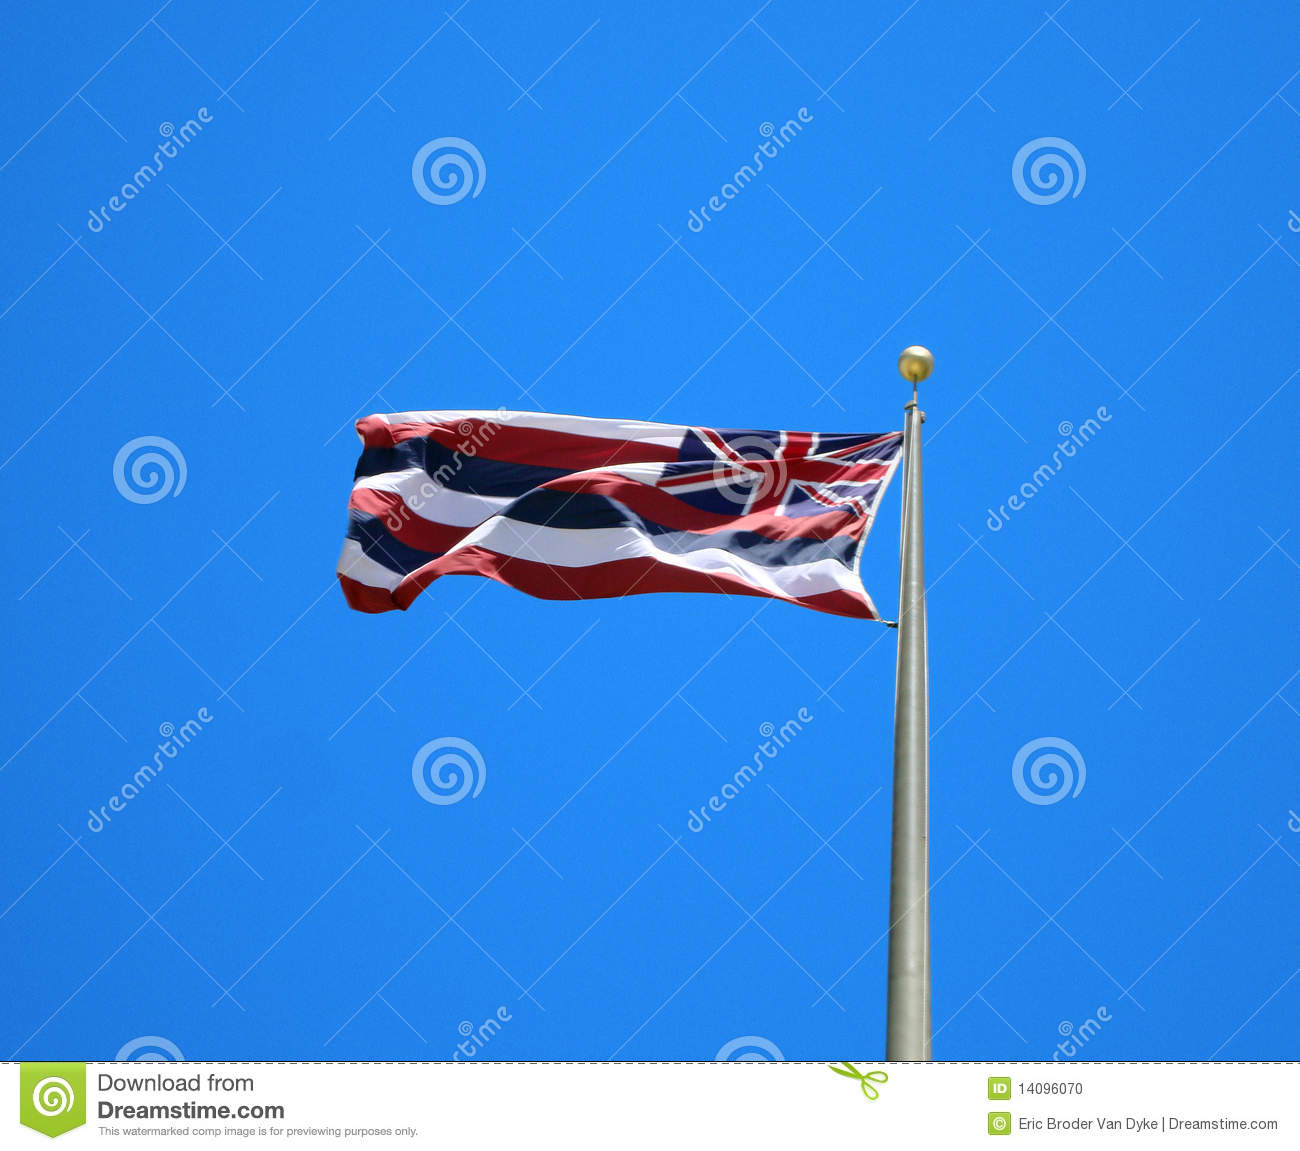 Hawaii State Flag against Blue Background